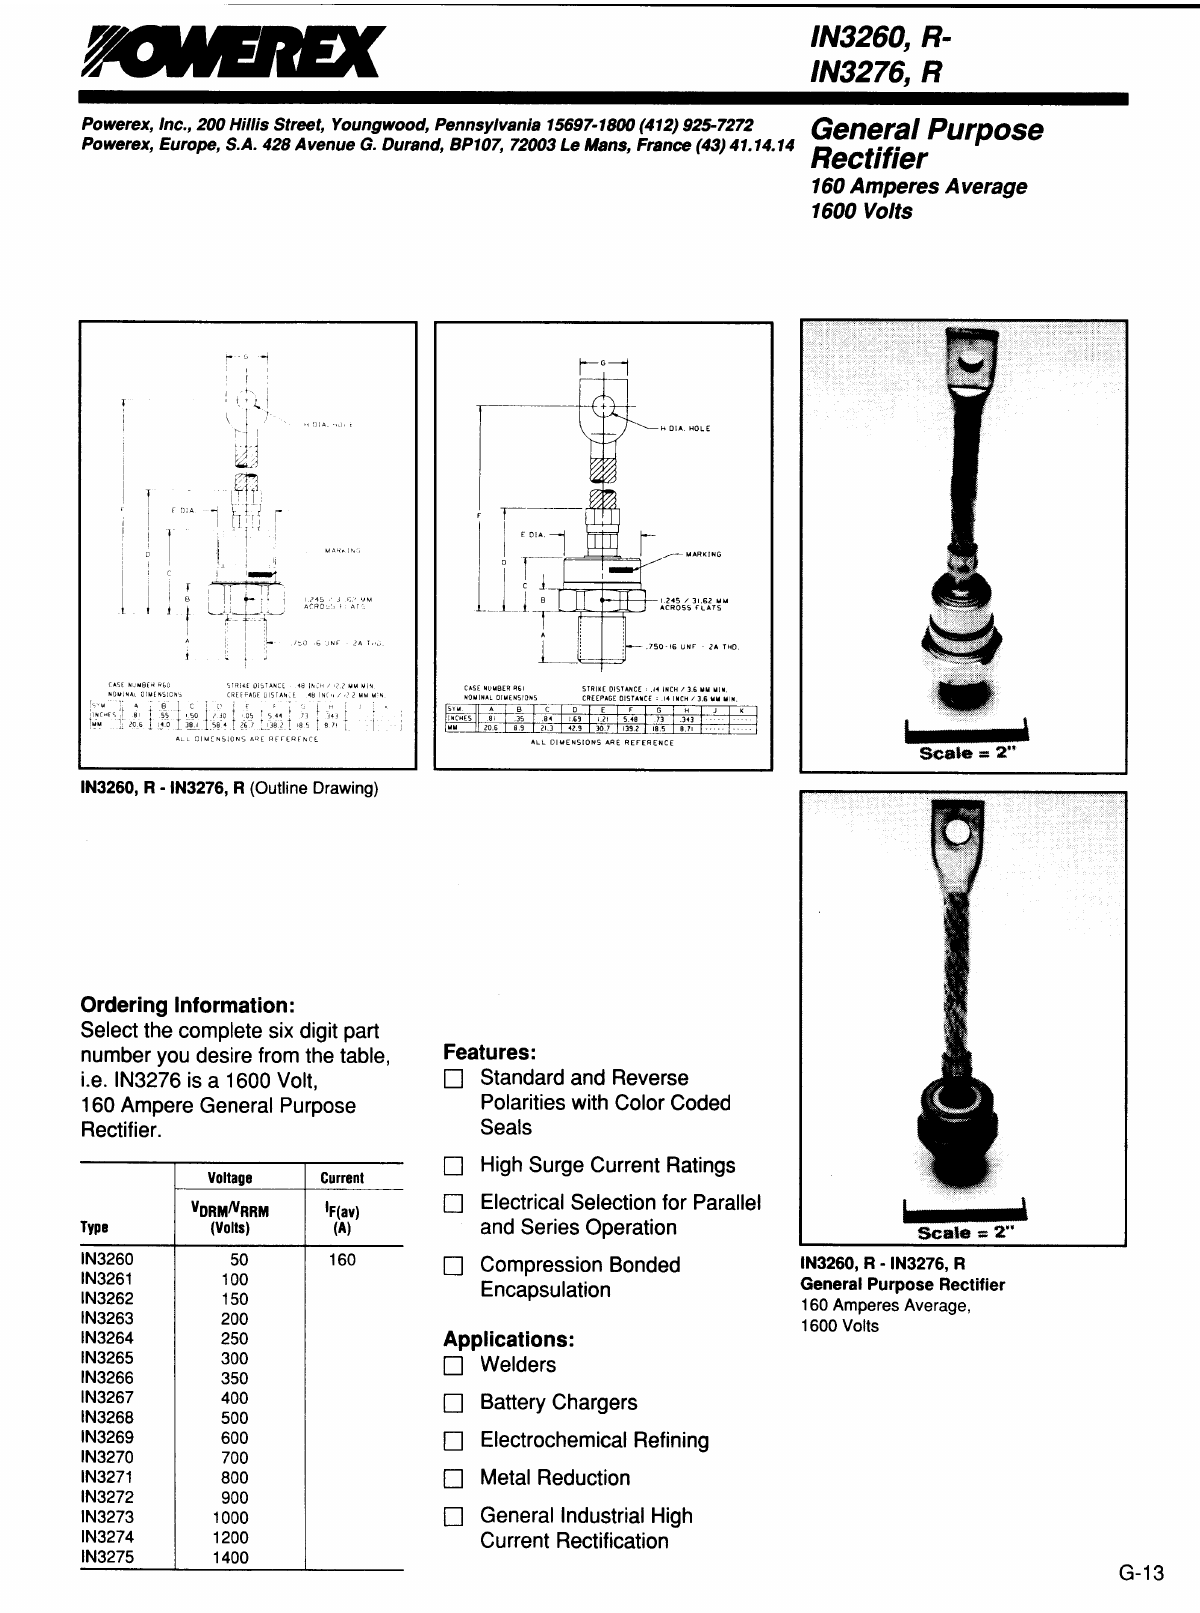 R-IN3269 datasheet